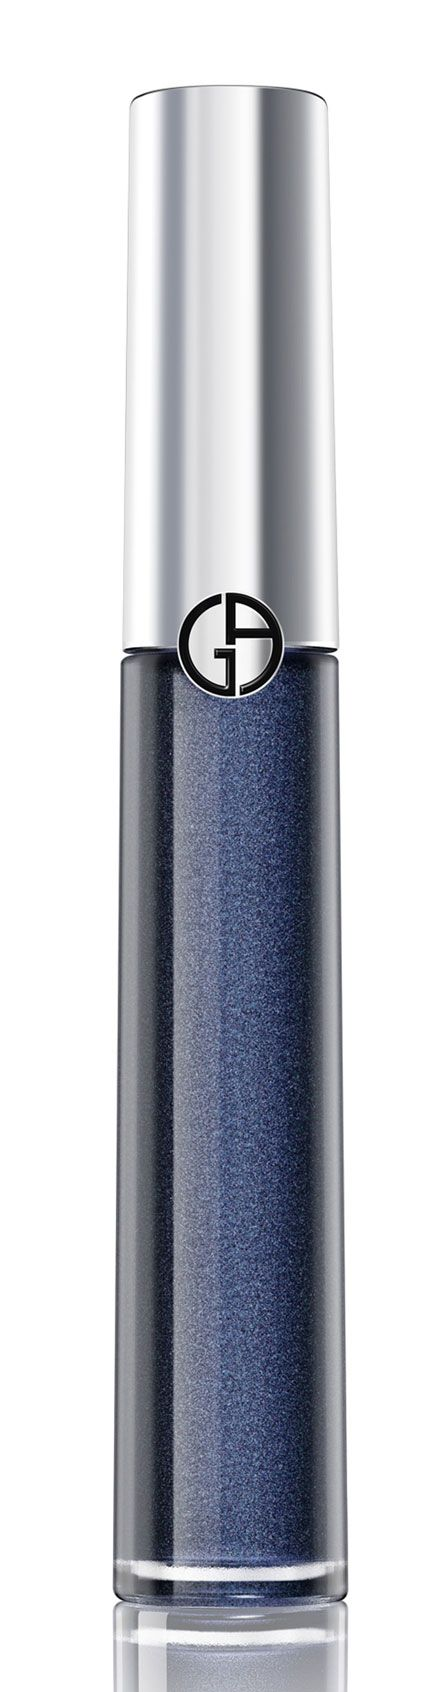 <p>Eyetint n. 7 Shadow, <strong>Giorgio Armani Make Up</strong></p>